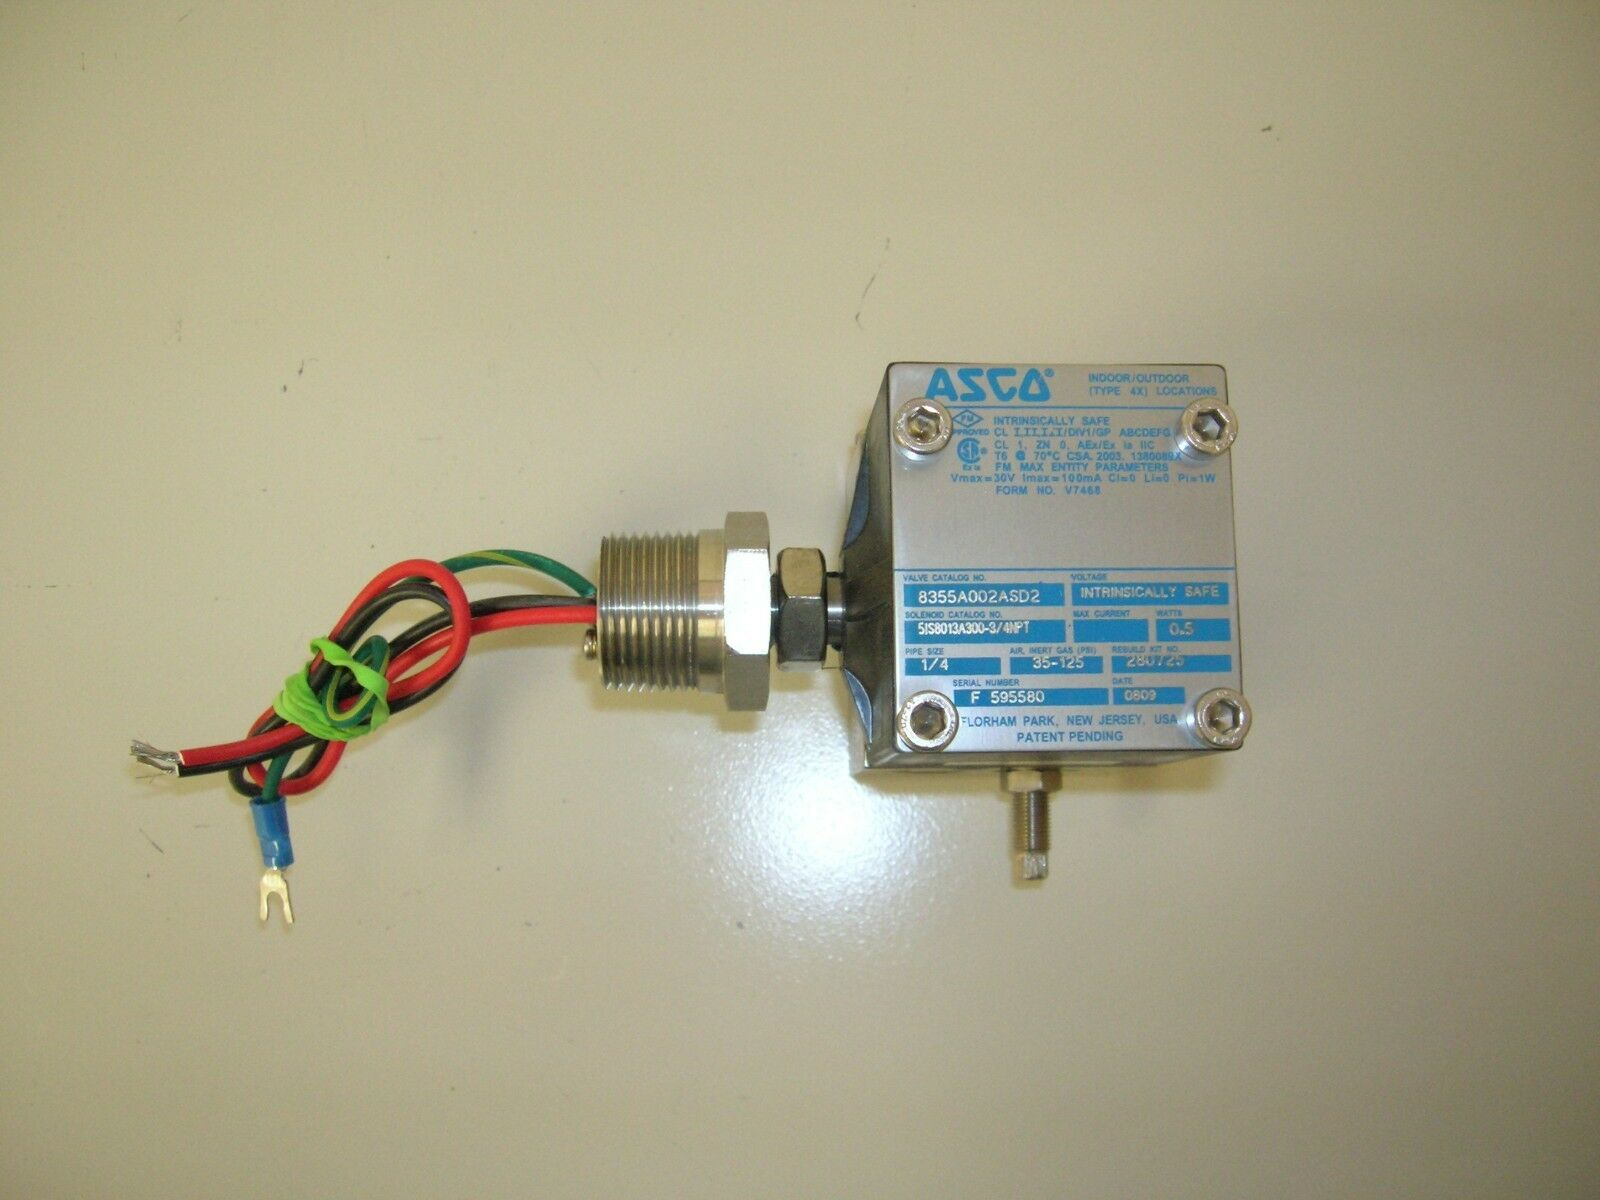 Asco 8355a002asd2 24vdc Solenoid Valve Intrinsically Safe Ebay Wiring Picture 1 Of 5